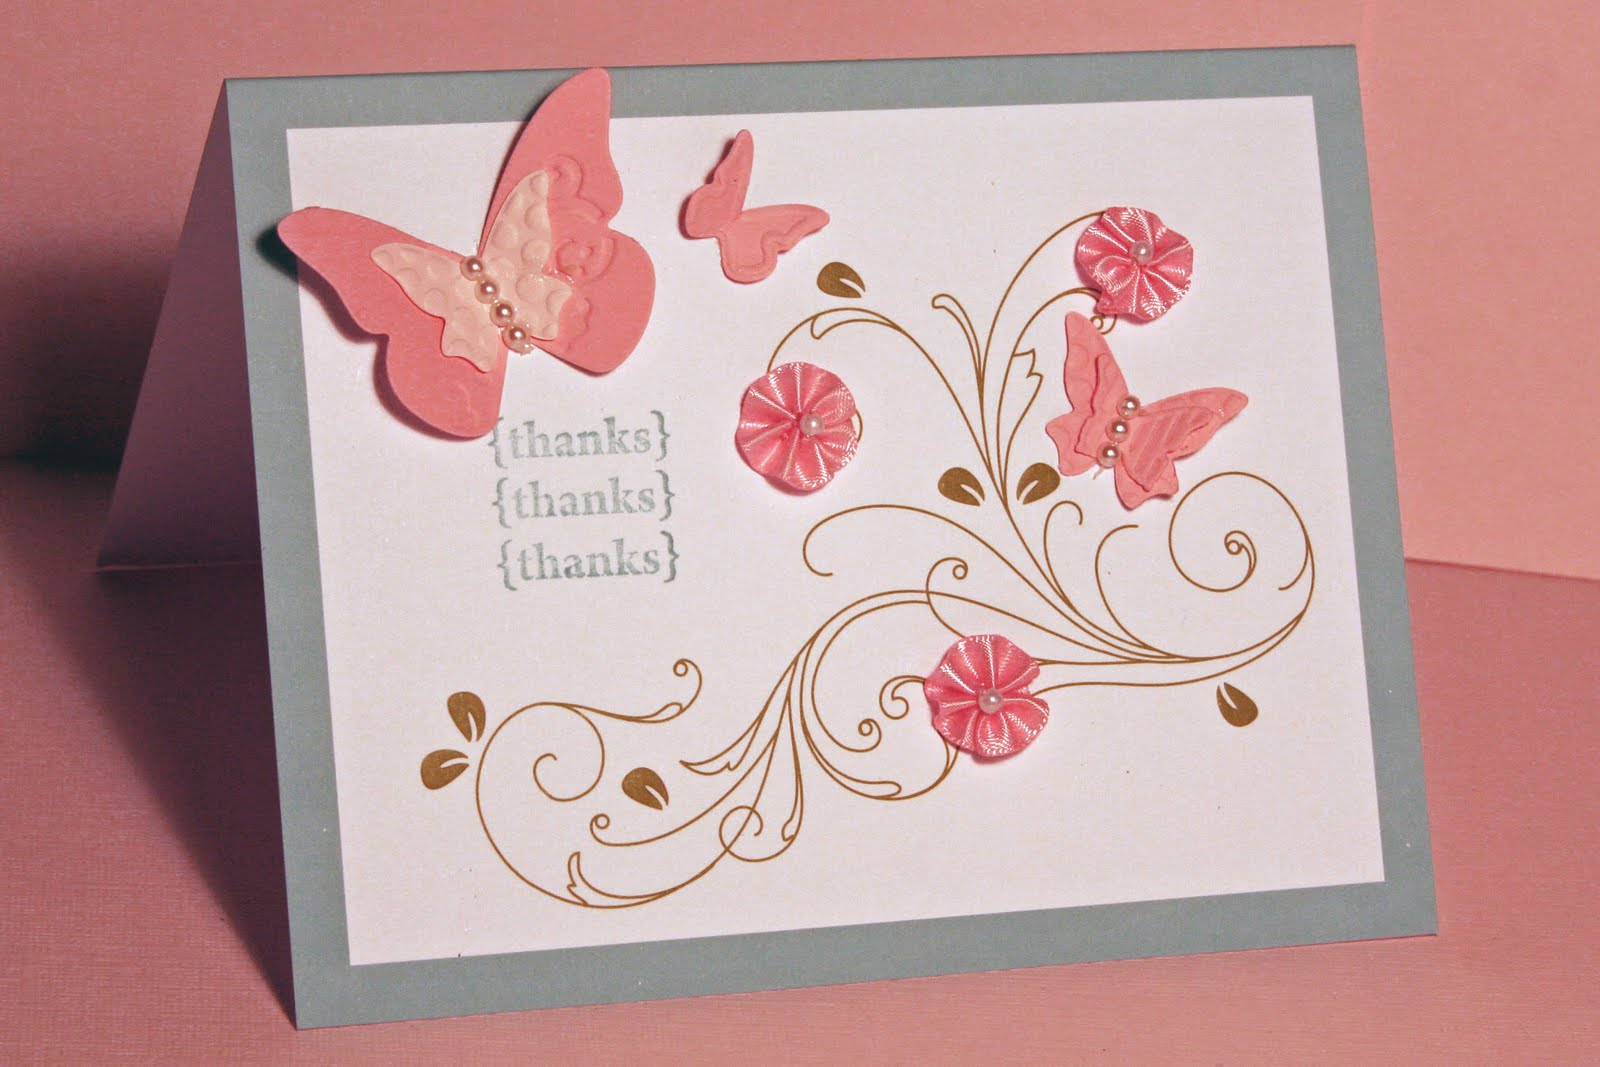 Stamped sophisticates free new catalog and say goodbye to while the kit includes printed embossed cards and pink adhesive backed ribbon flowers with pearl centers i added more embellishments using the butterflies kristyandbryce Images